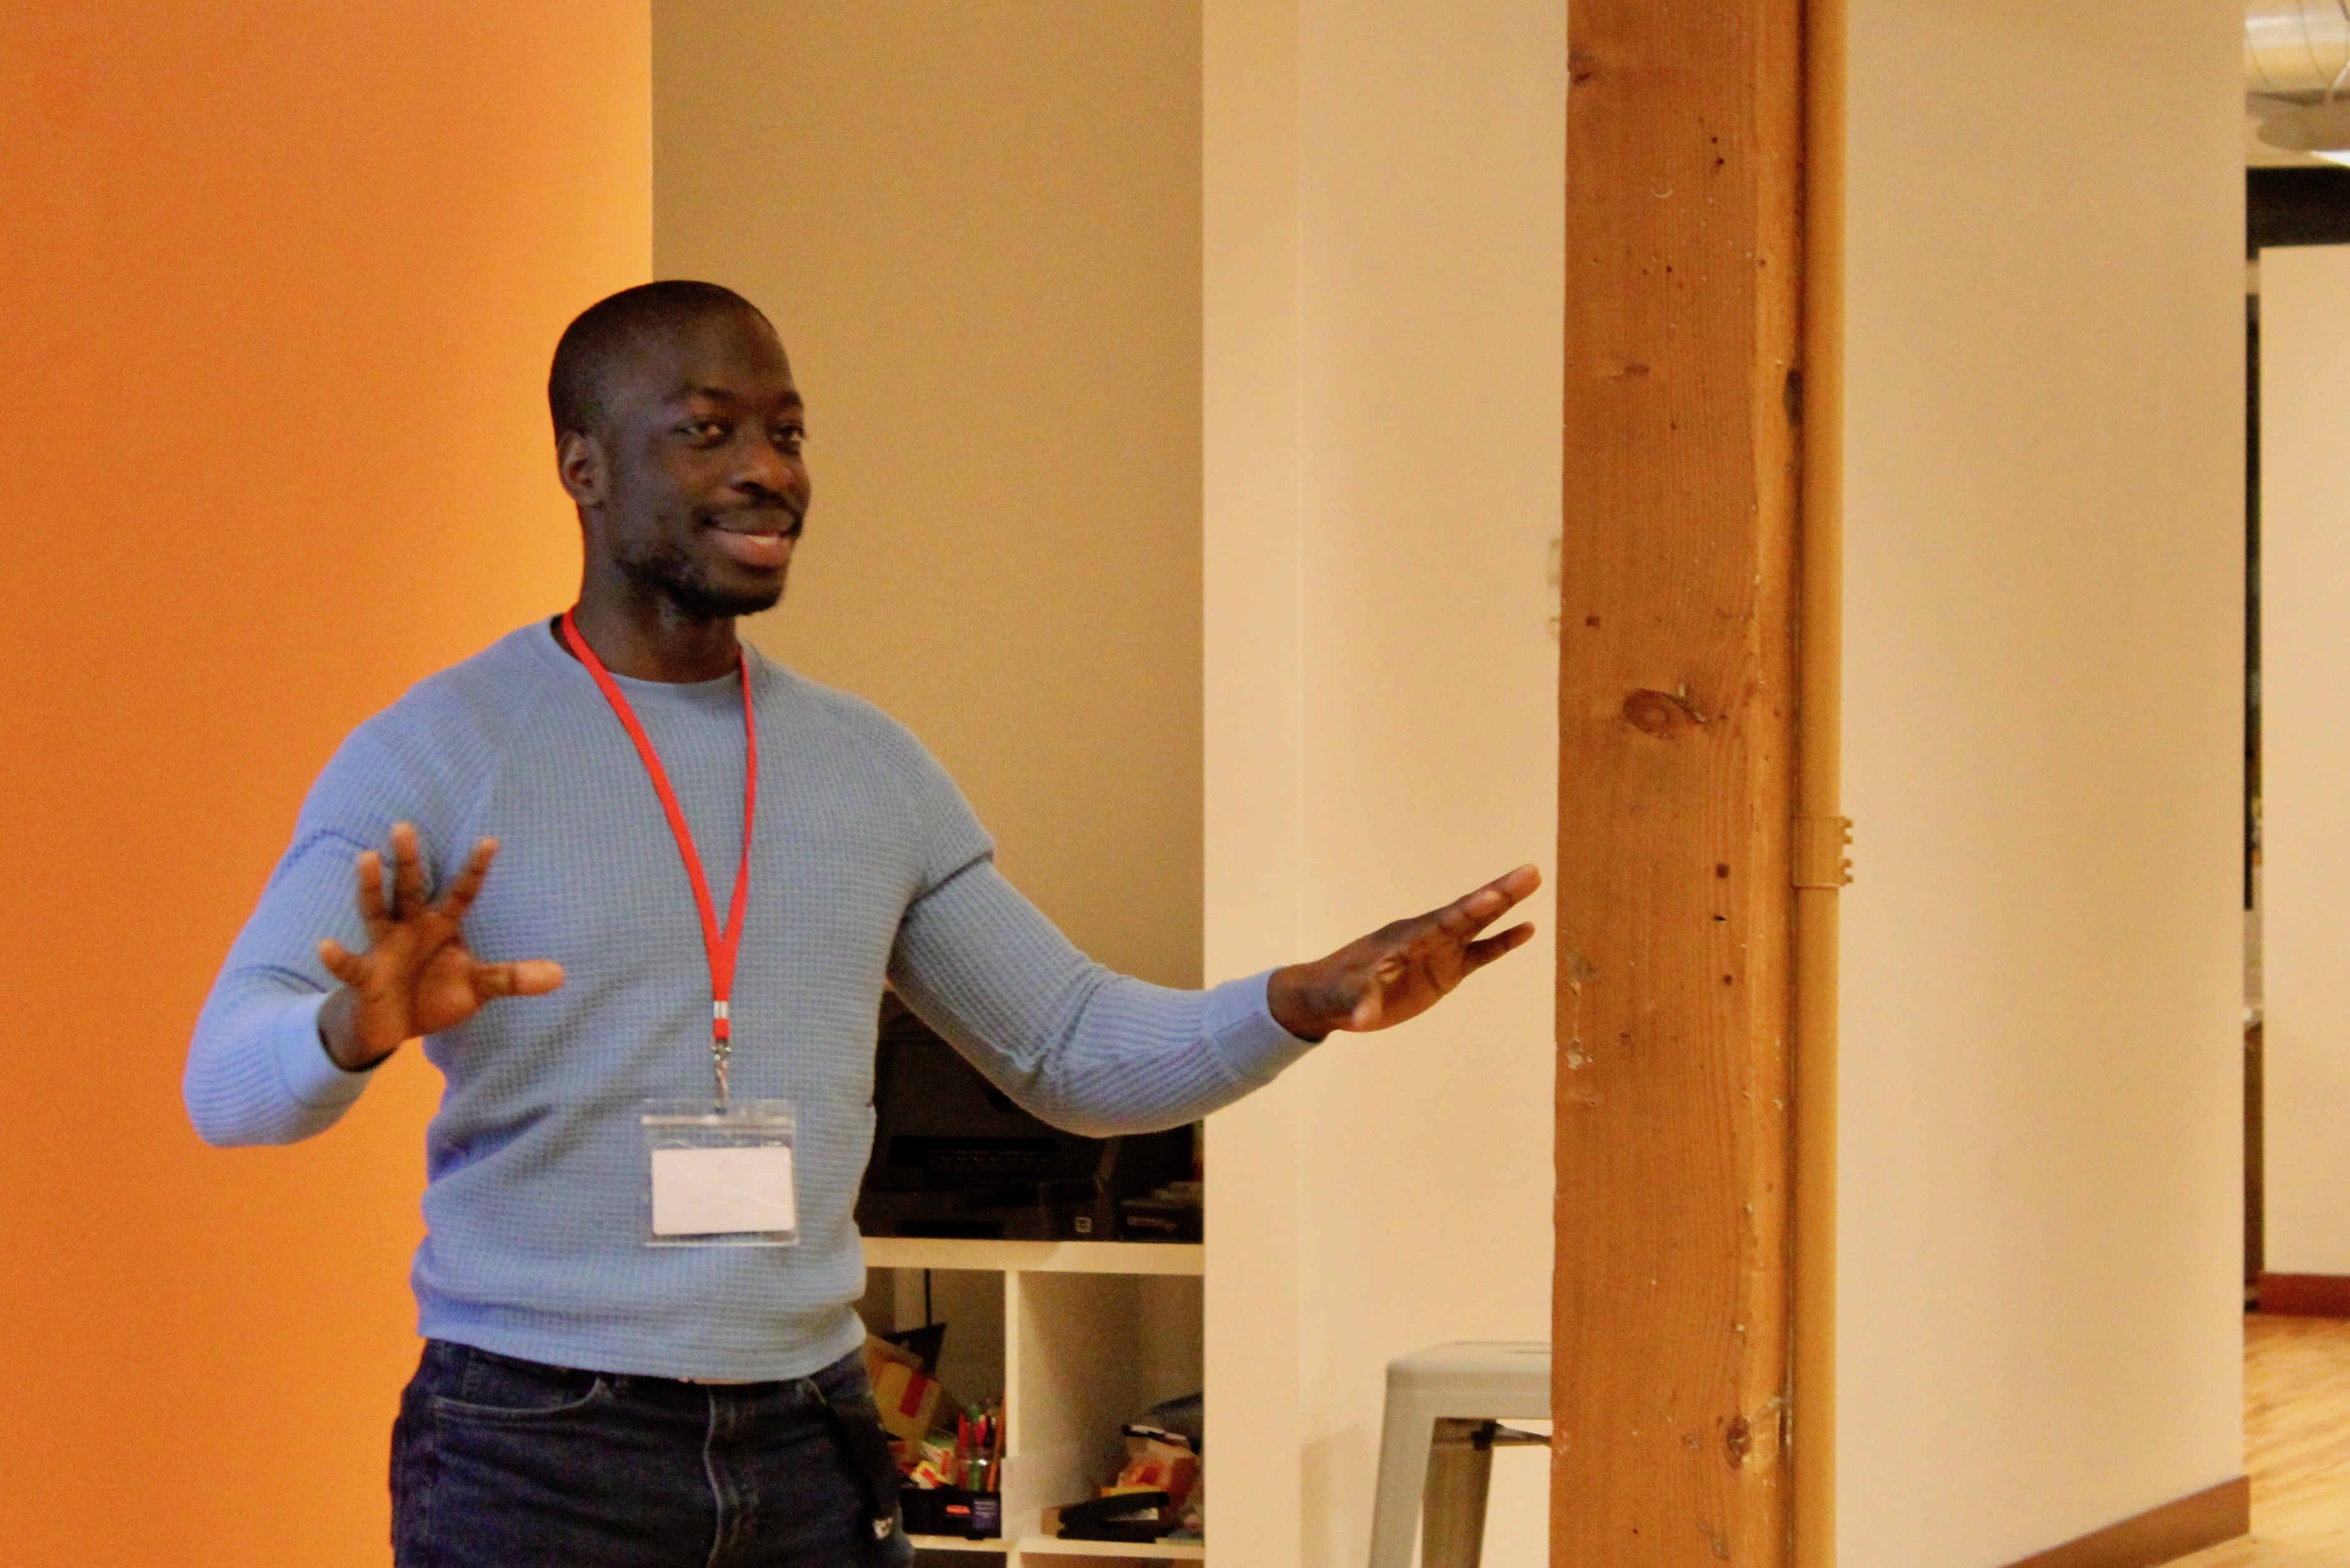 Baba Ajayi, Founder of SmoothAI, pitching at Upside's Winter 2020 Quarterly event